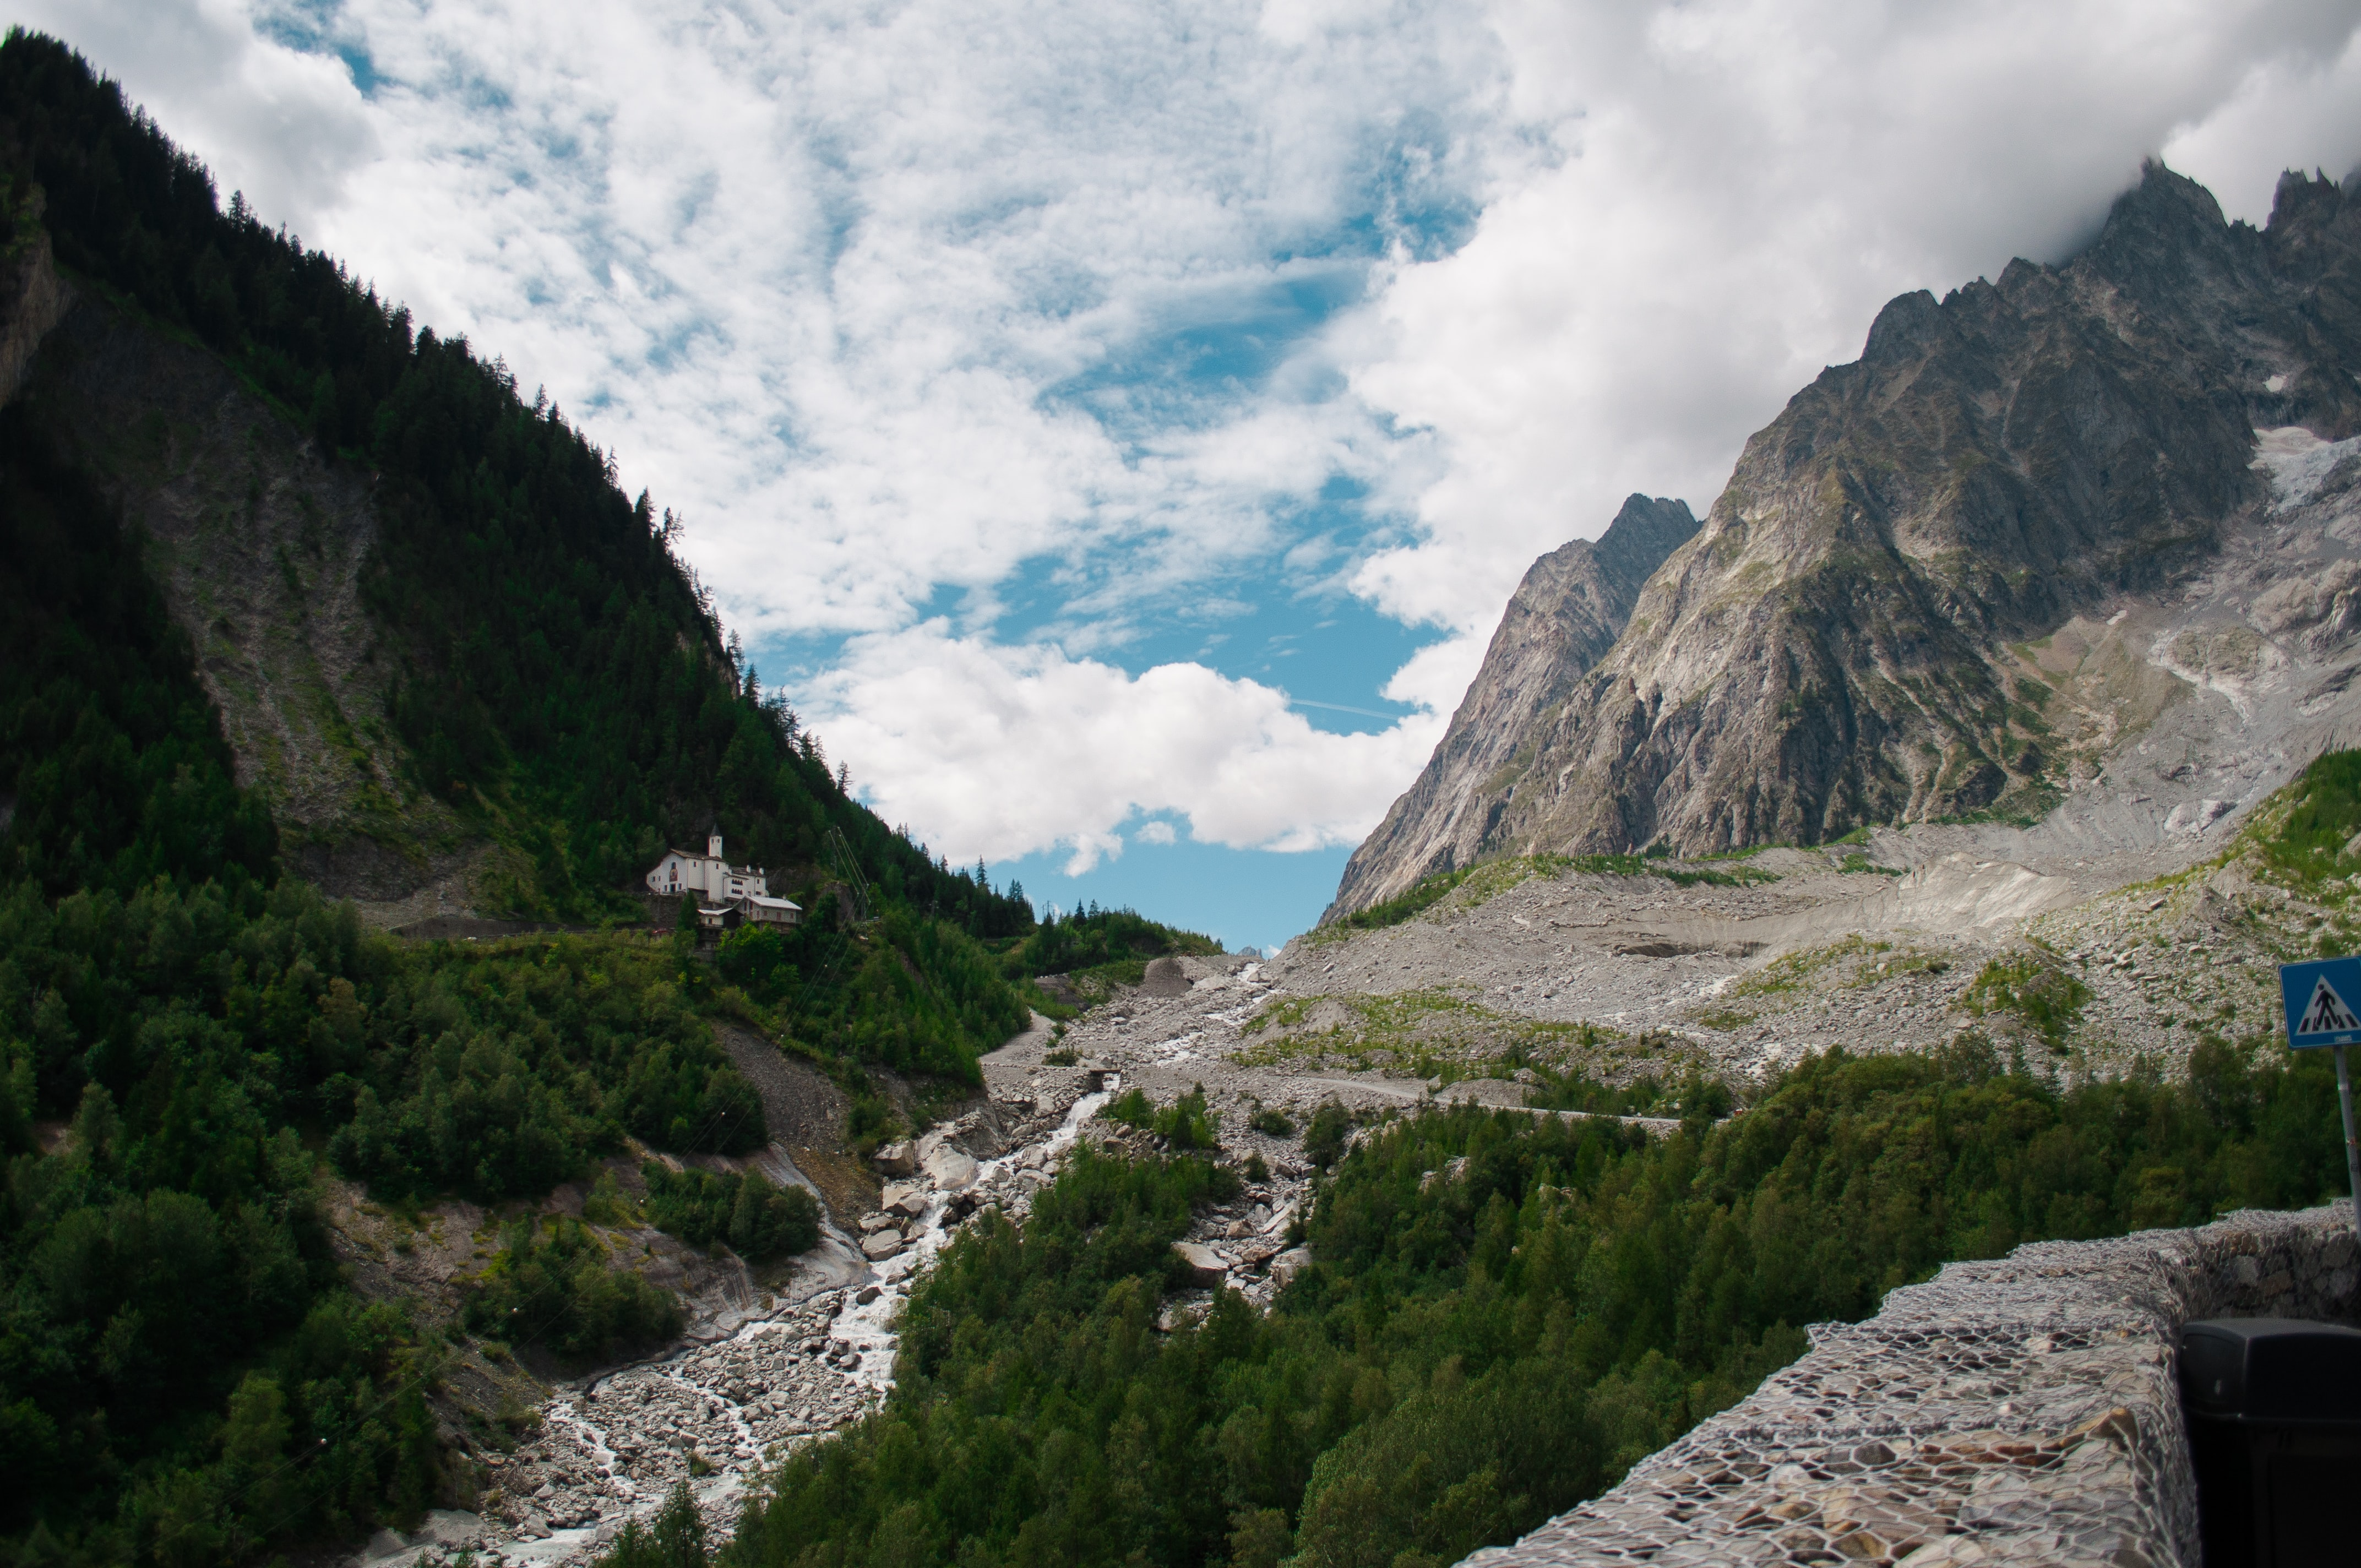 landscape photograph of river between mountain ranges